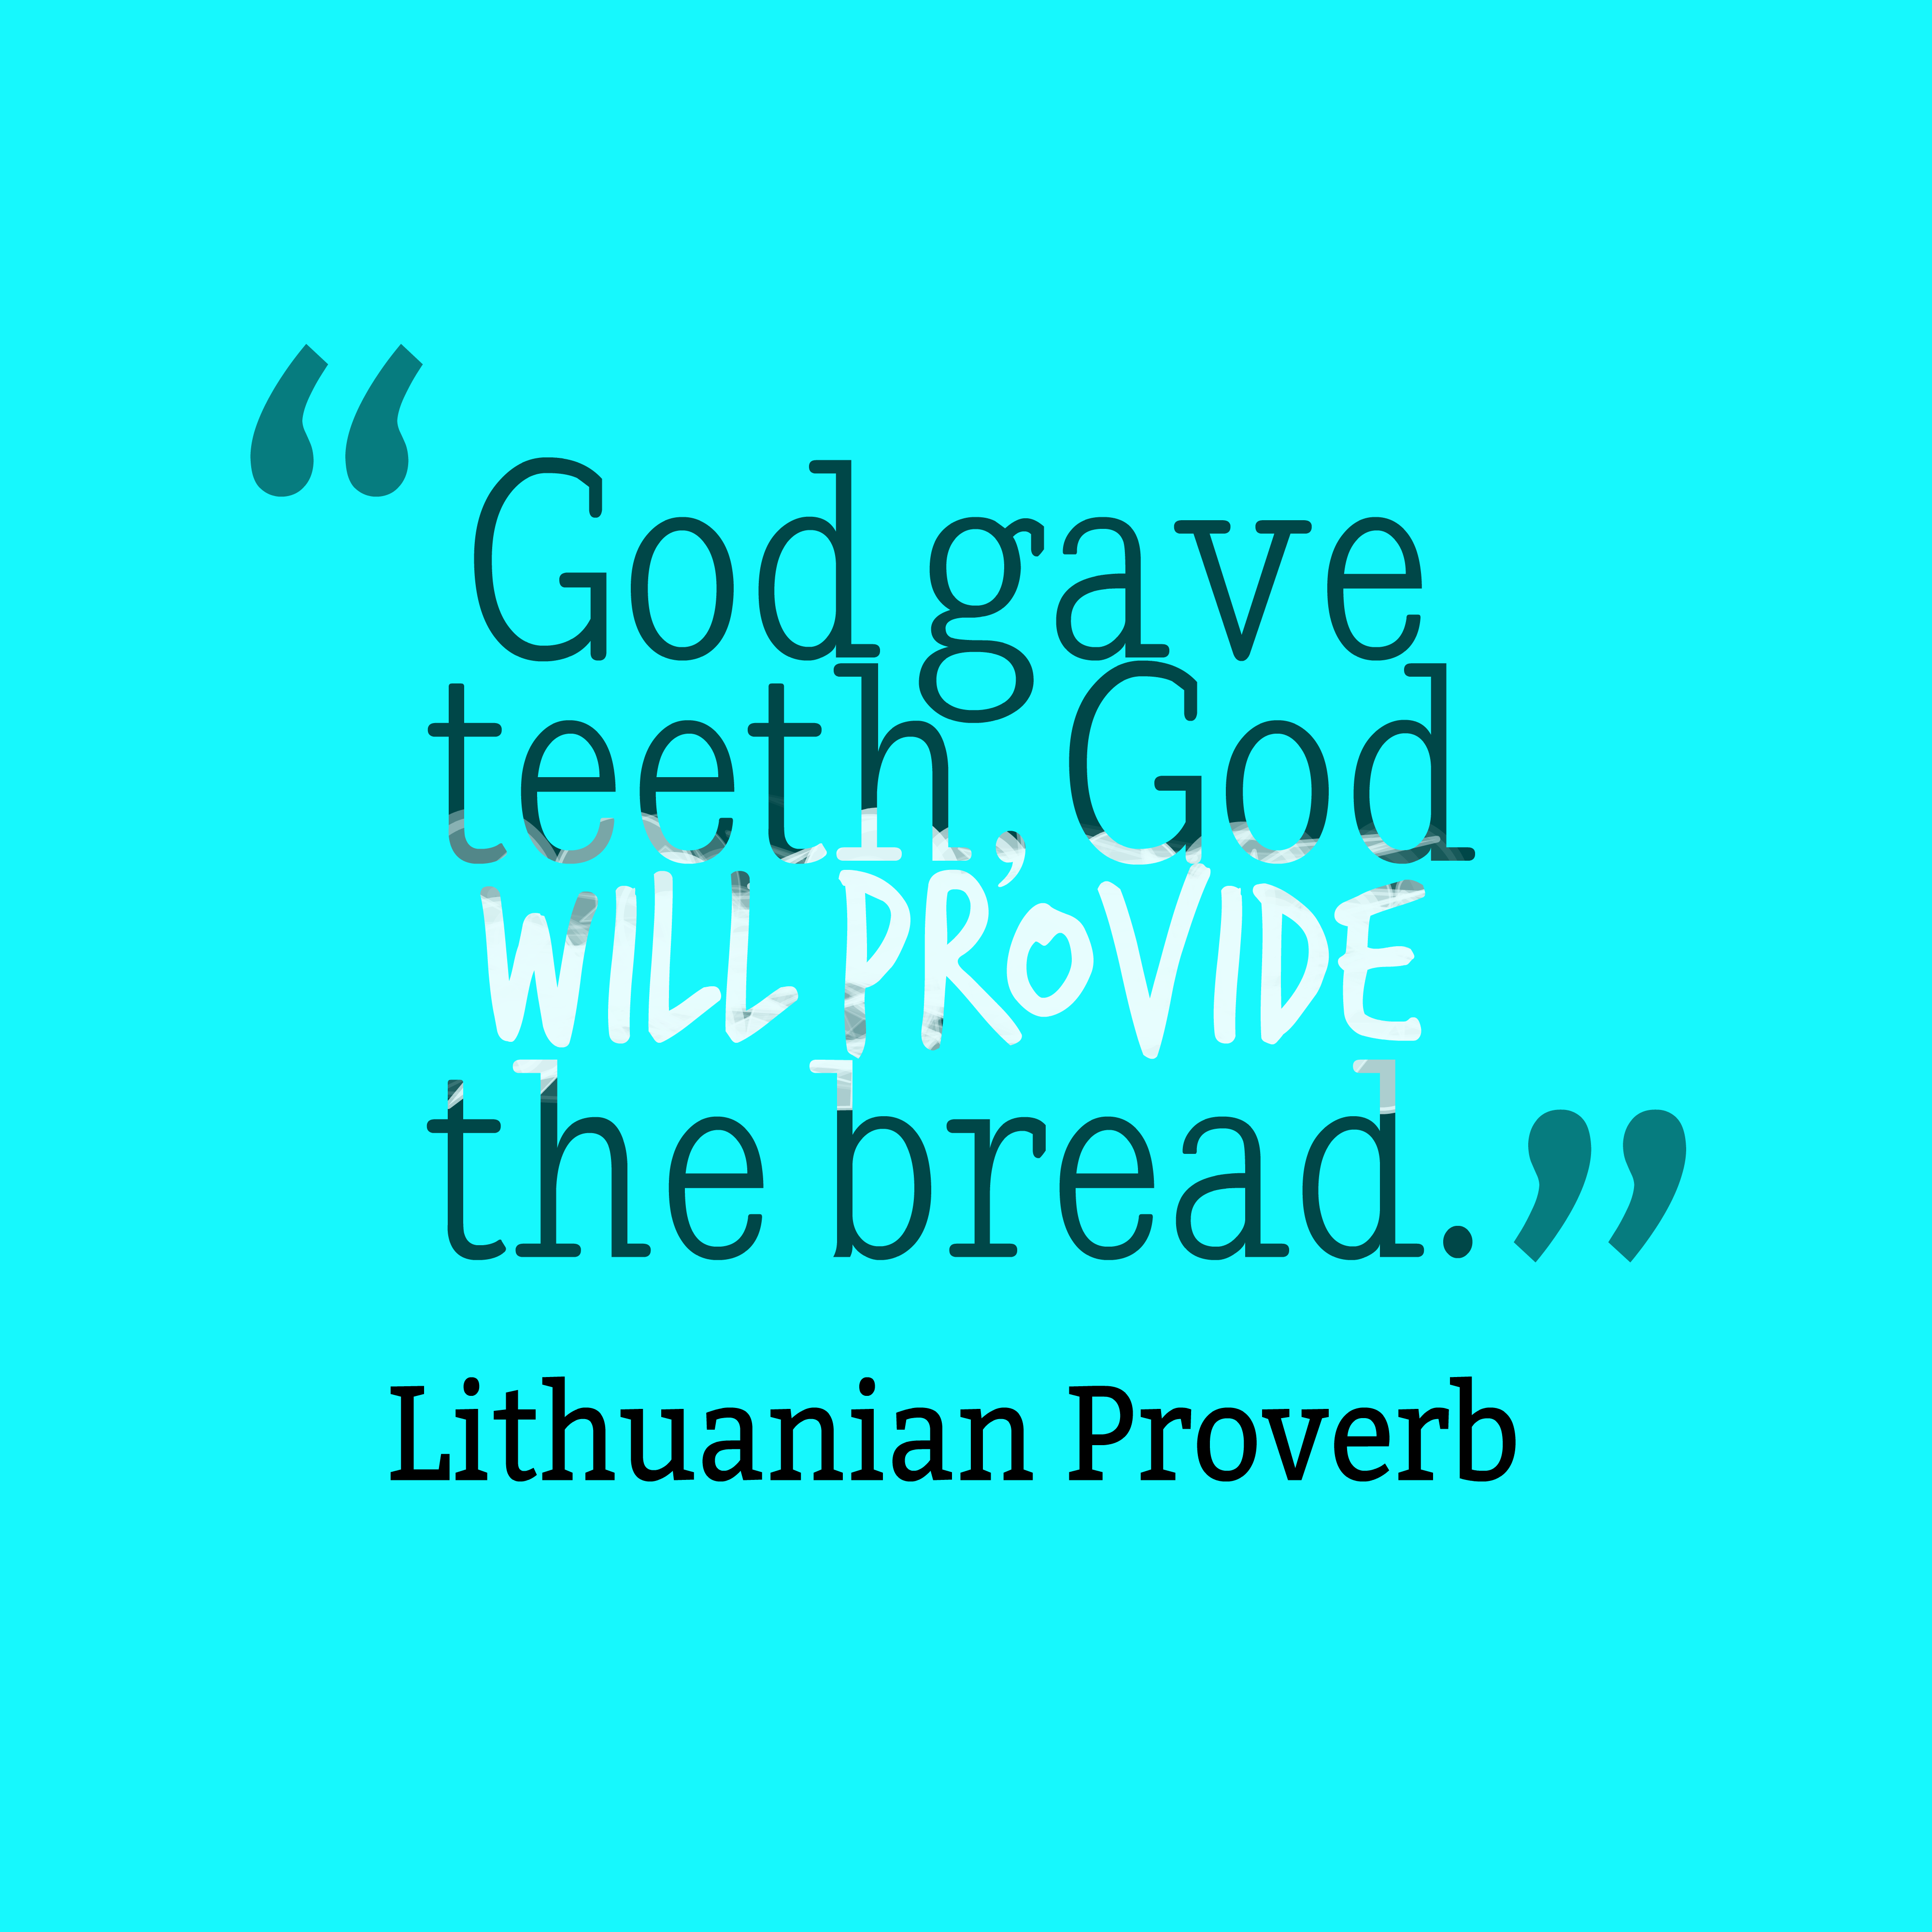 lithuanian proverb quotes